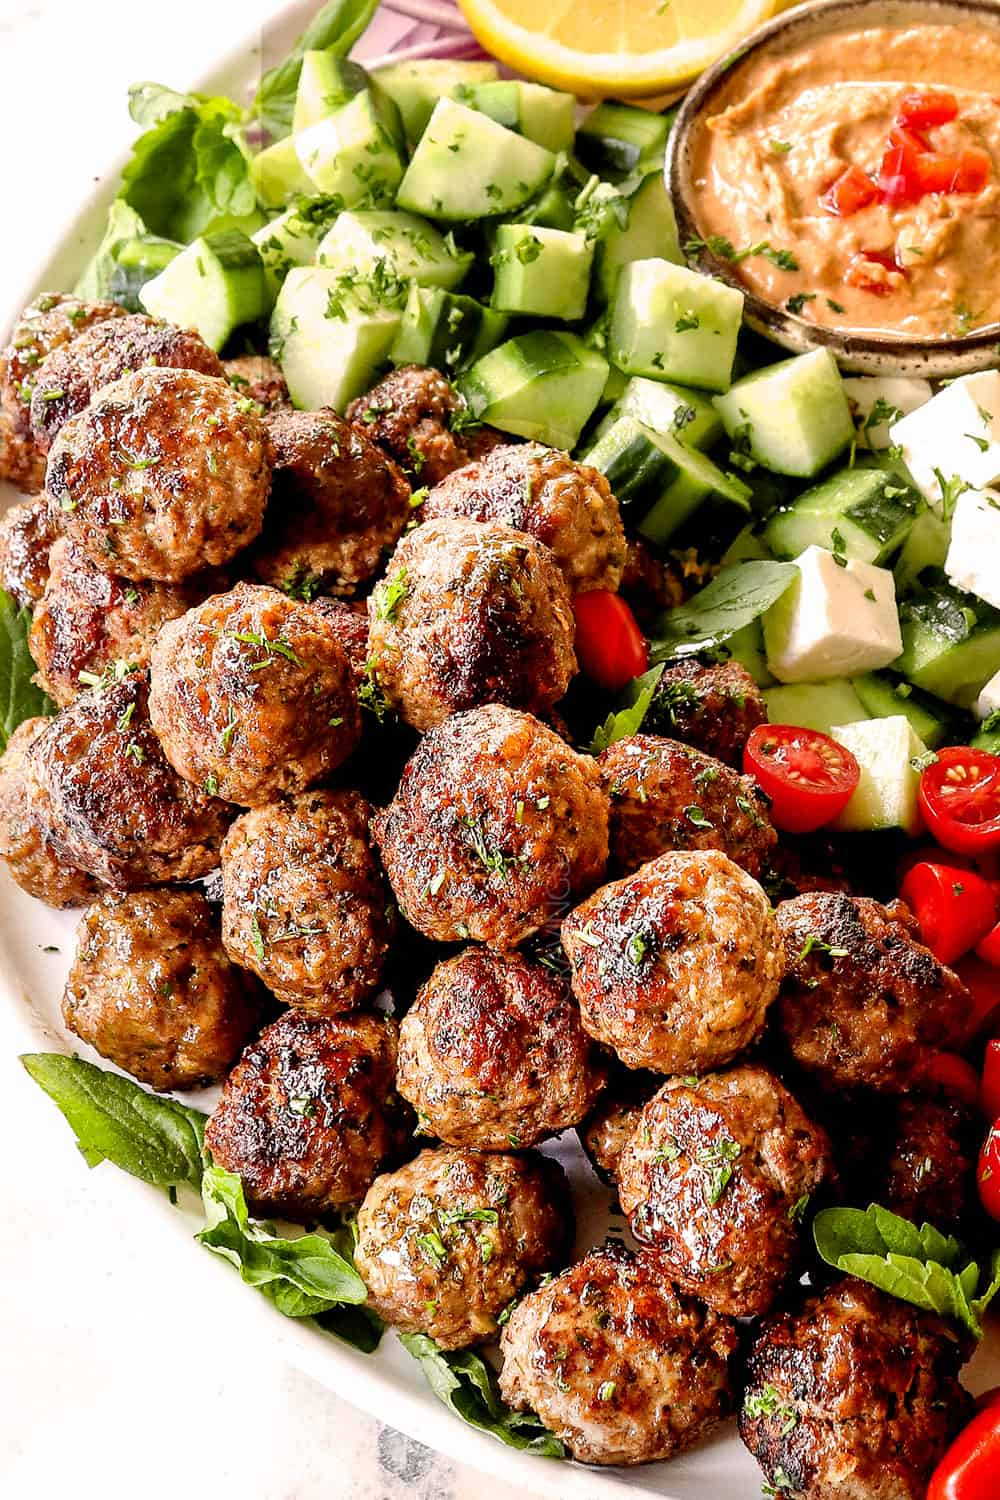 Greek Meatball recipe (Keftedes) with lamb meatballs on a platter with cucumbers and hummus